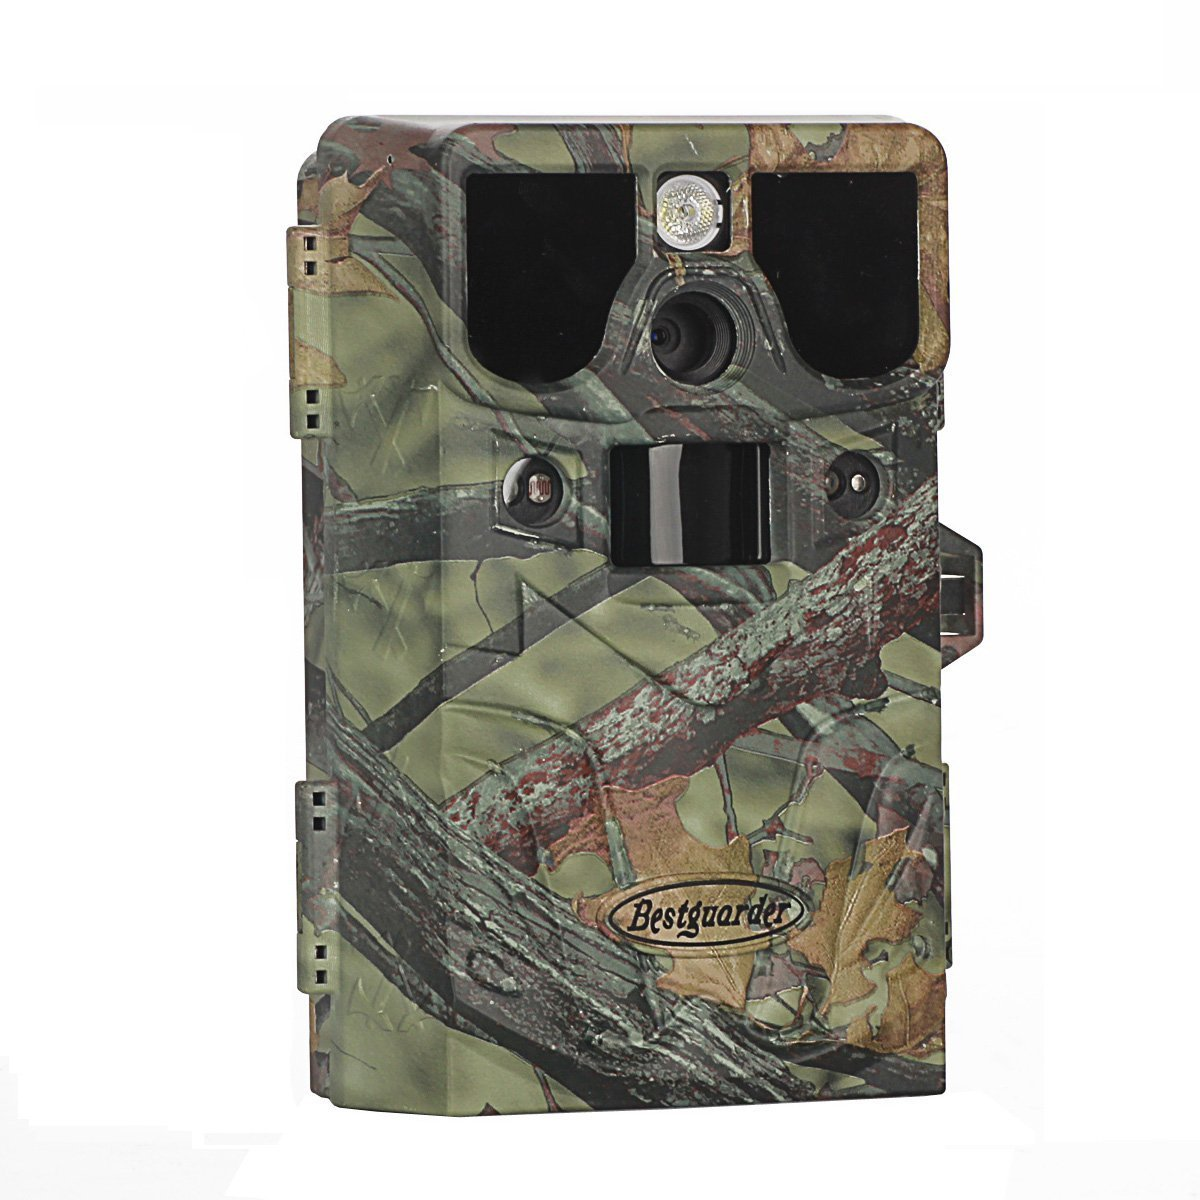 8 in 1 HD Waterproof Game & Trail Hunting Scouting Ghost Camera with Game Call Function for Cold Blooded Animals, Take 12MP Image & 1080P Video from 75feet/23m (SG-990V)